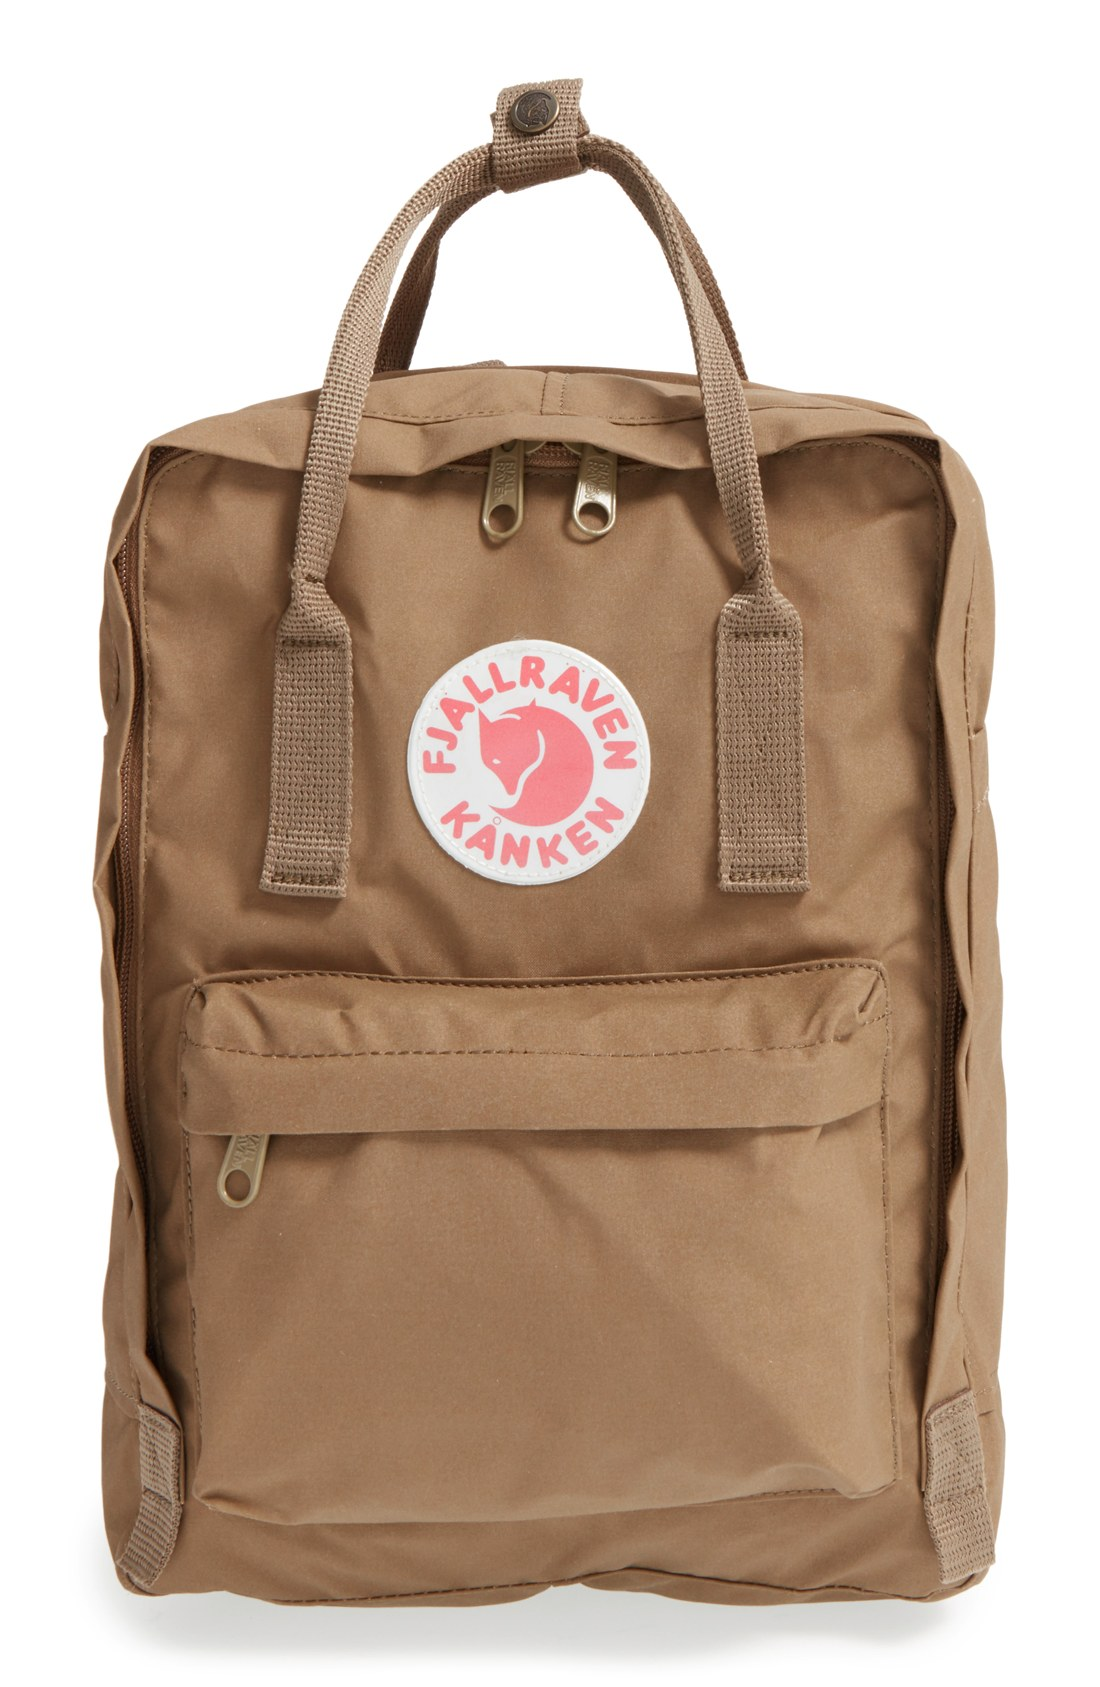 Designer Laptop Backpack P9fNbV7P